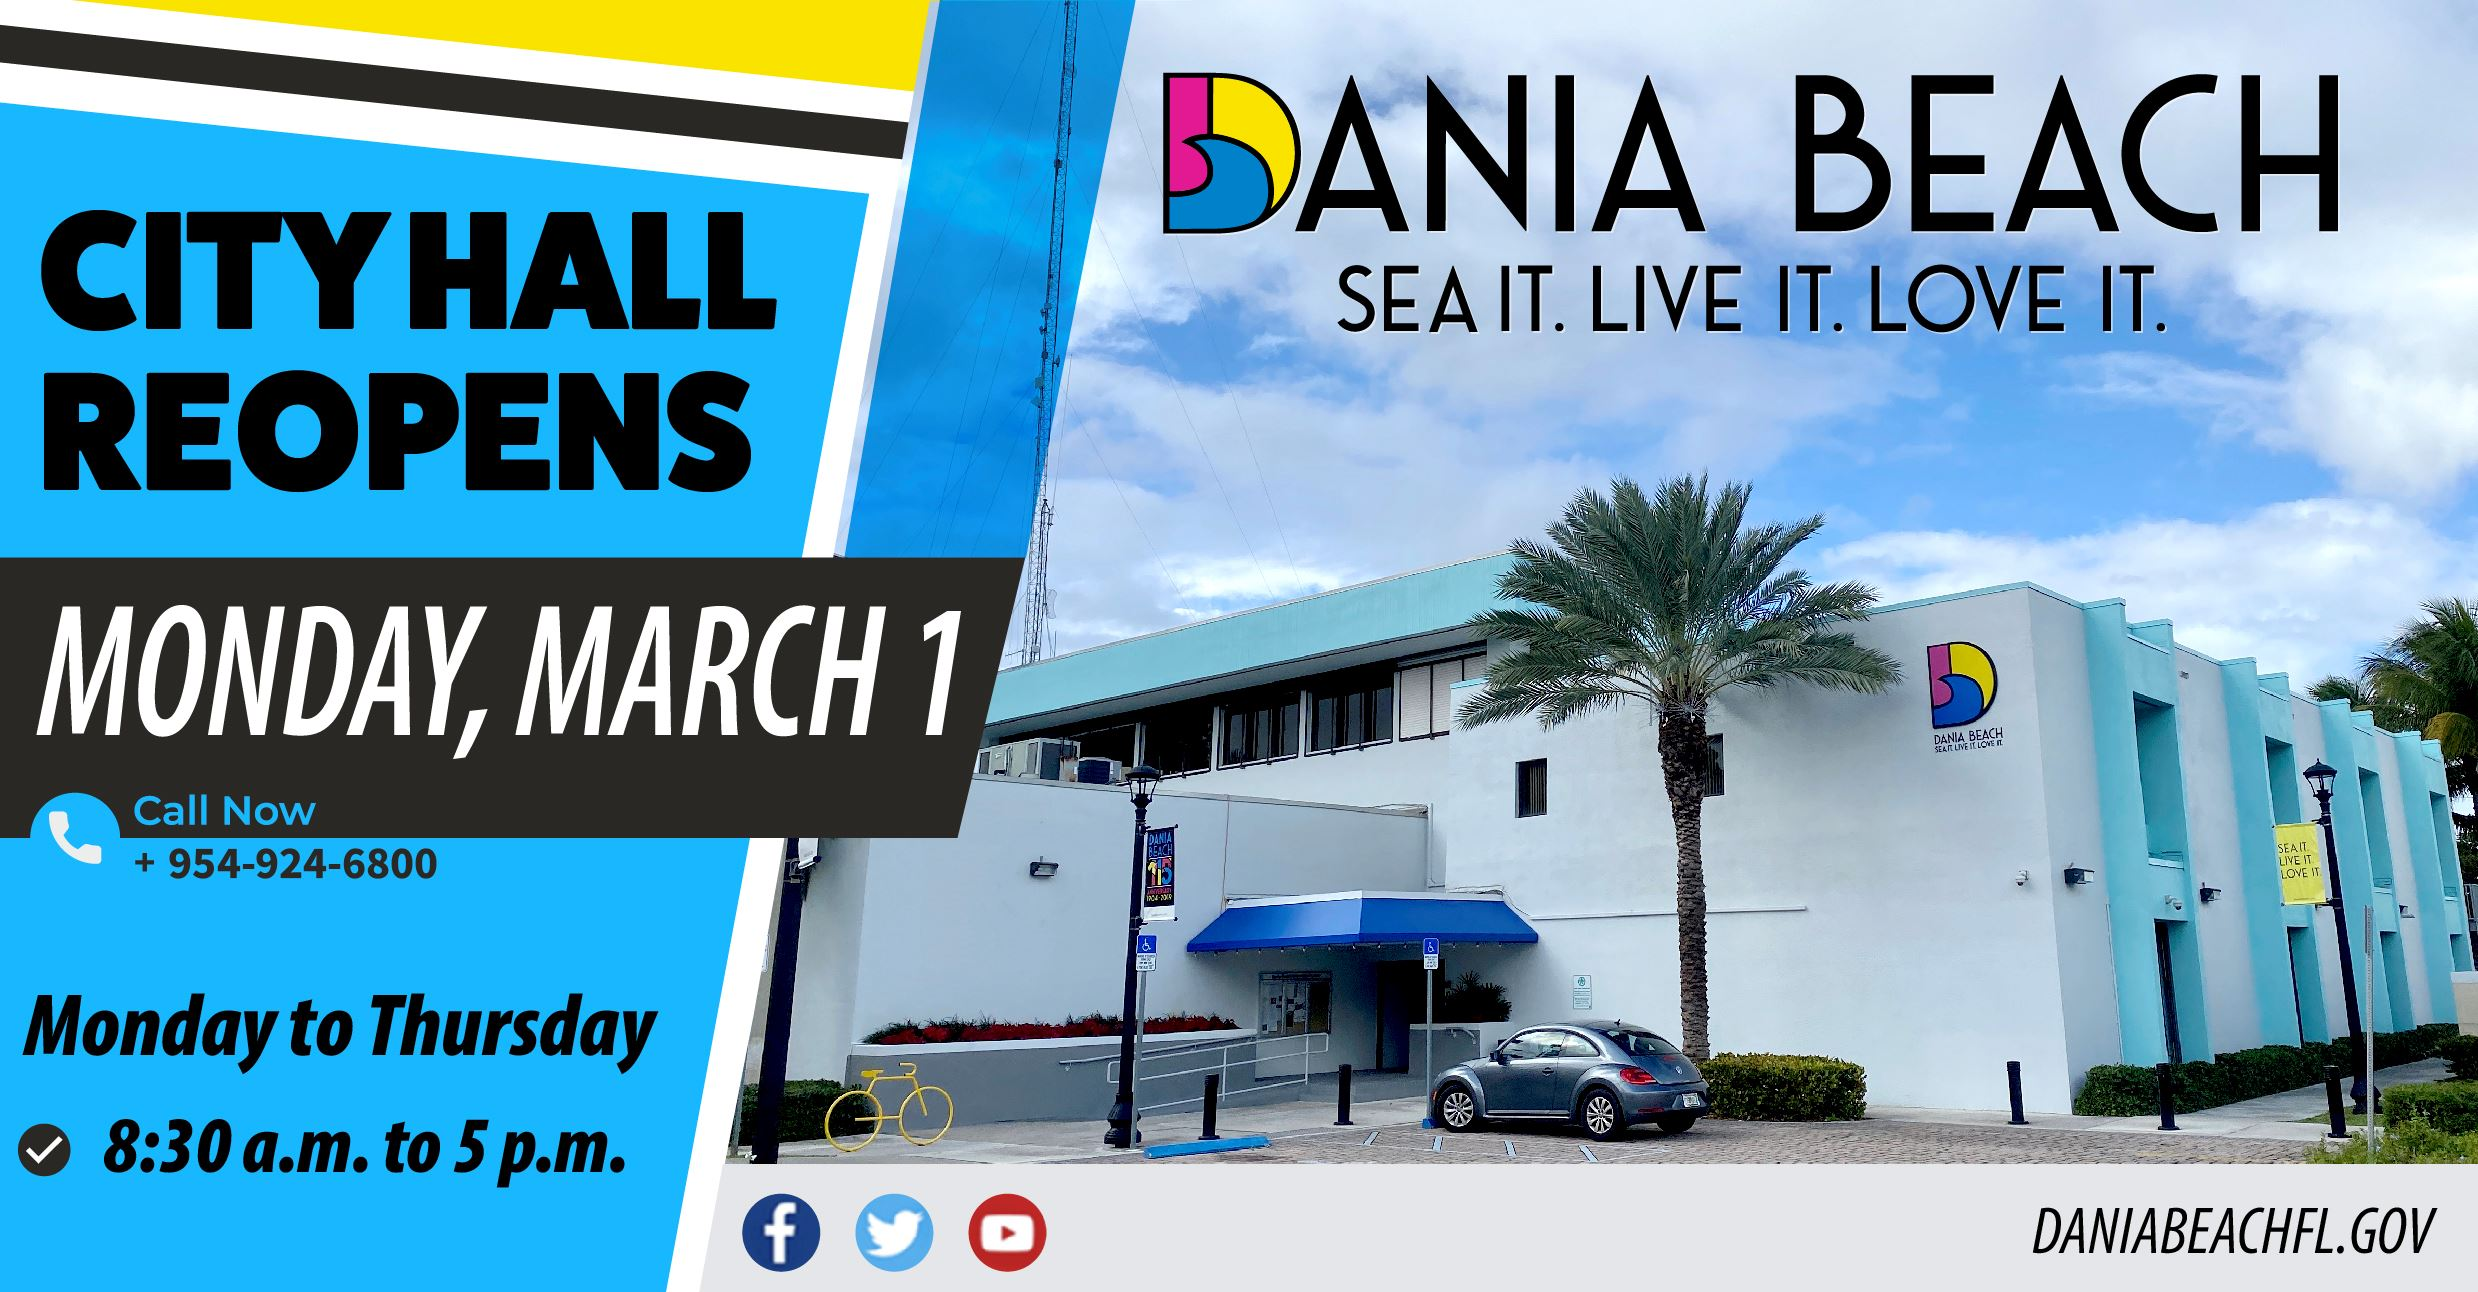 The City of Dania Beach is thrilled to announce the REOPENING of CITY HALL this Monday, March 1.